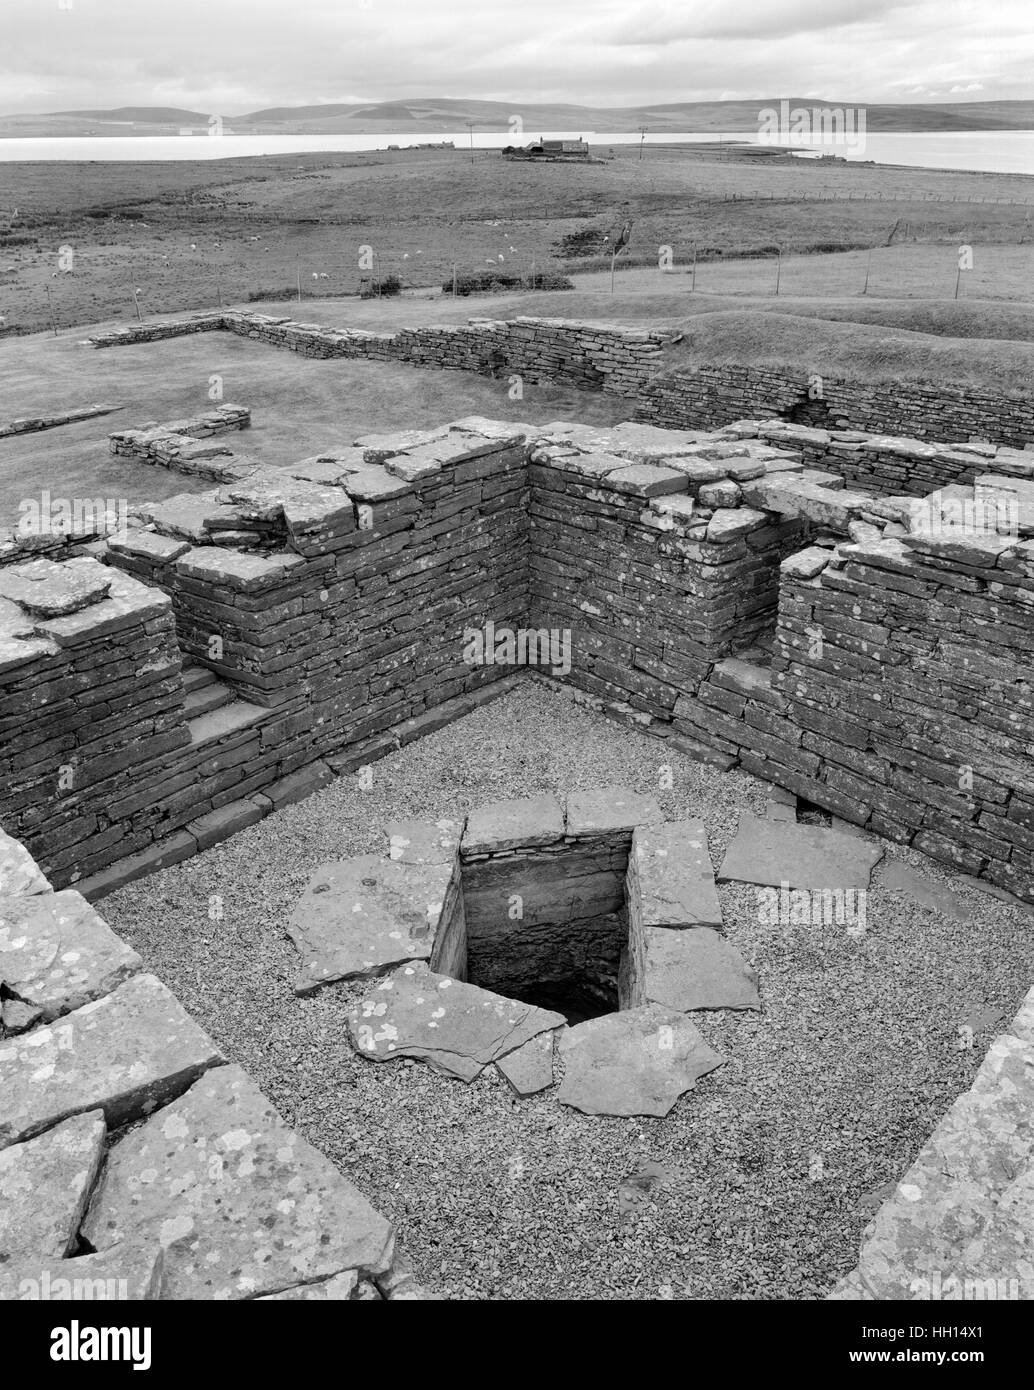 Water tank in storage basement of the keep of Cubbie Roo's Castle, Wyre, Orkney, built c.1145-50 by Kolbein - Stock Image